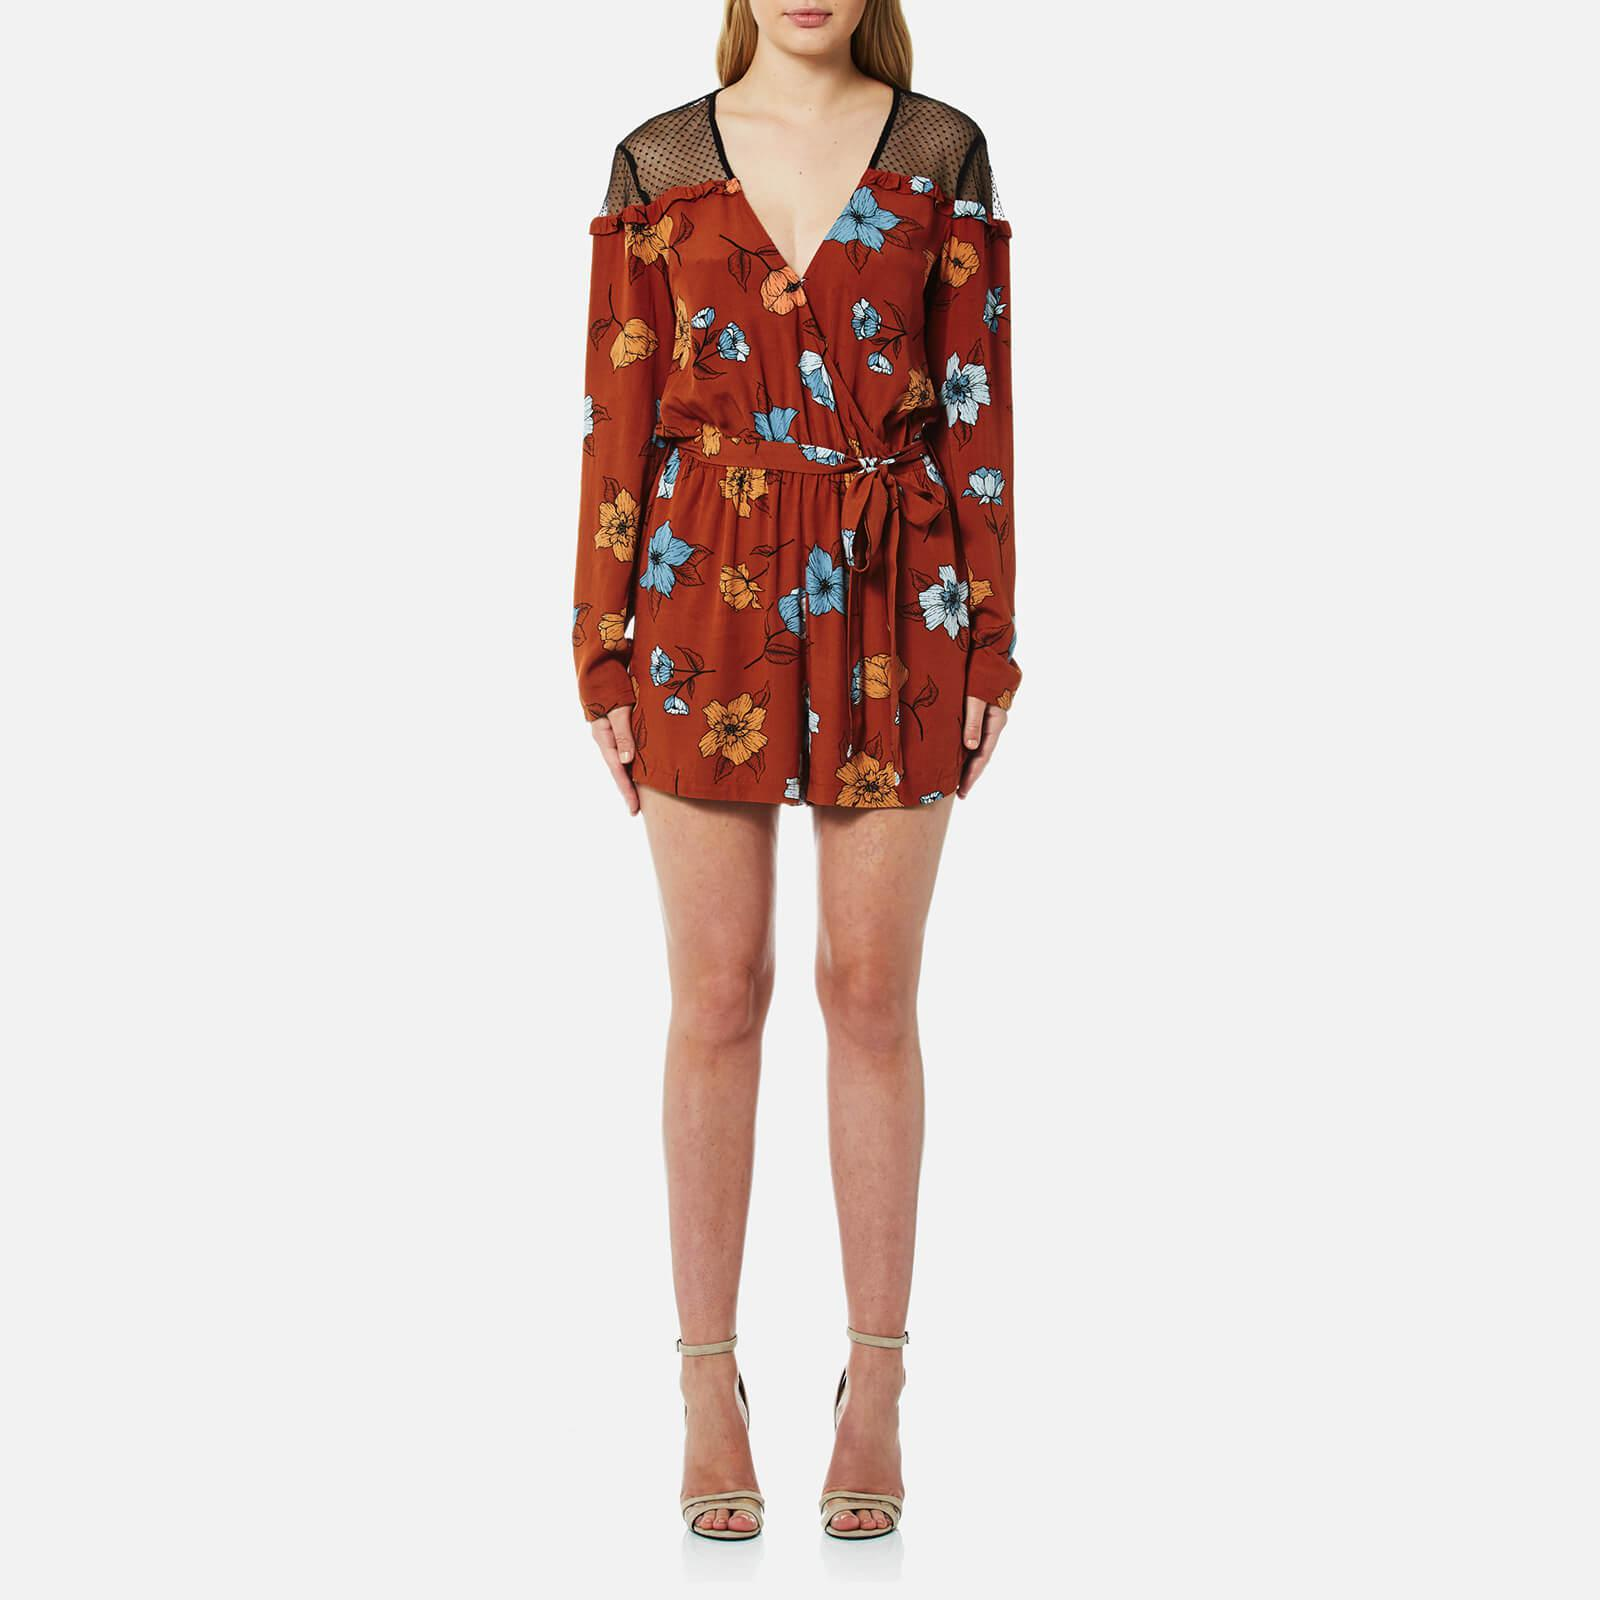 1ff815baf83 Lyst - MINKPINK Ornate Playsuit in Red - Save 27.272727272727266%